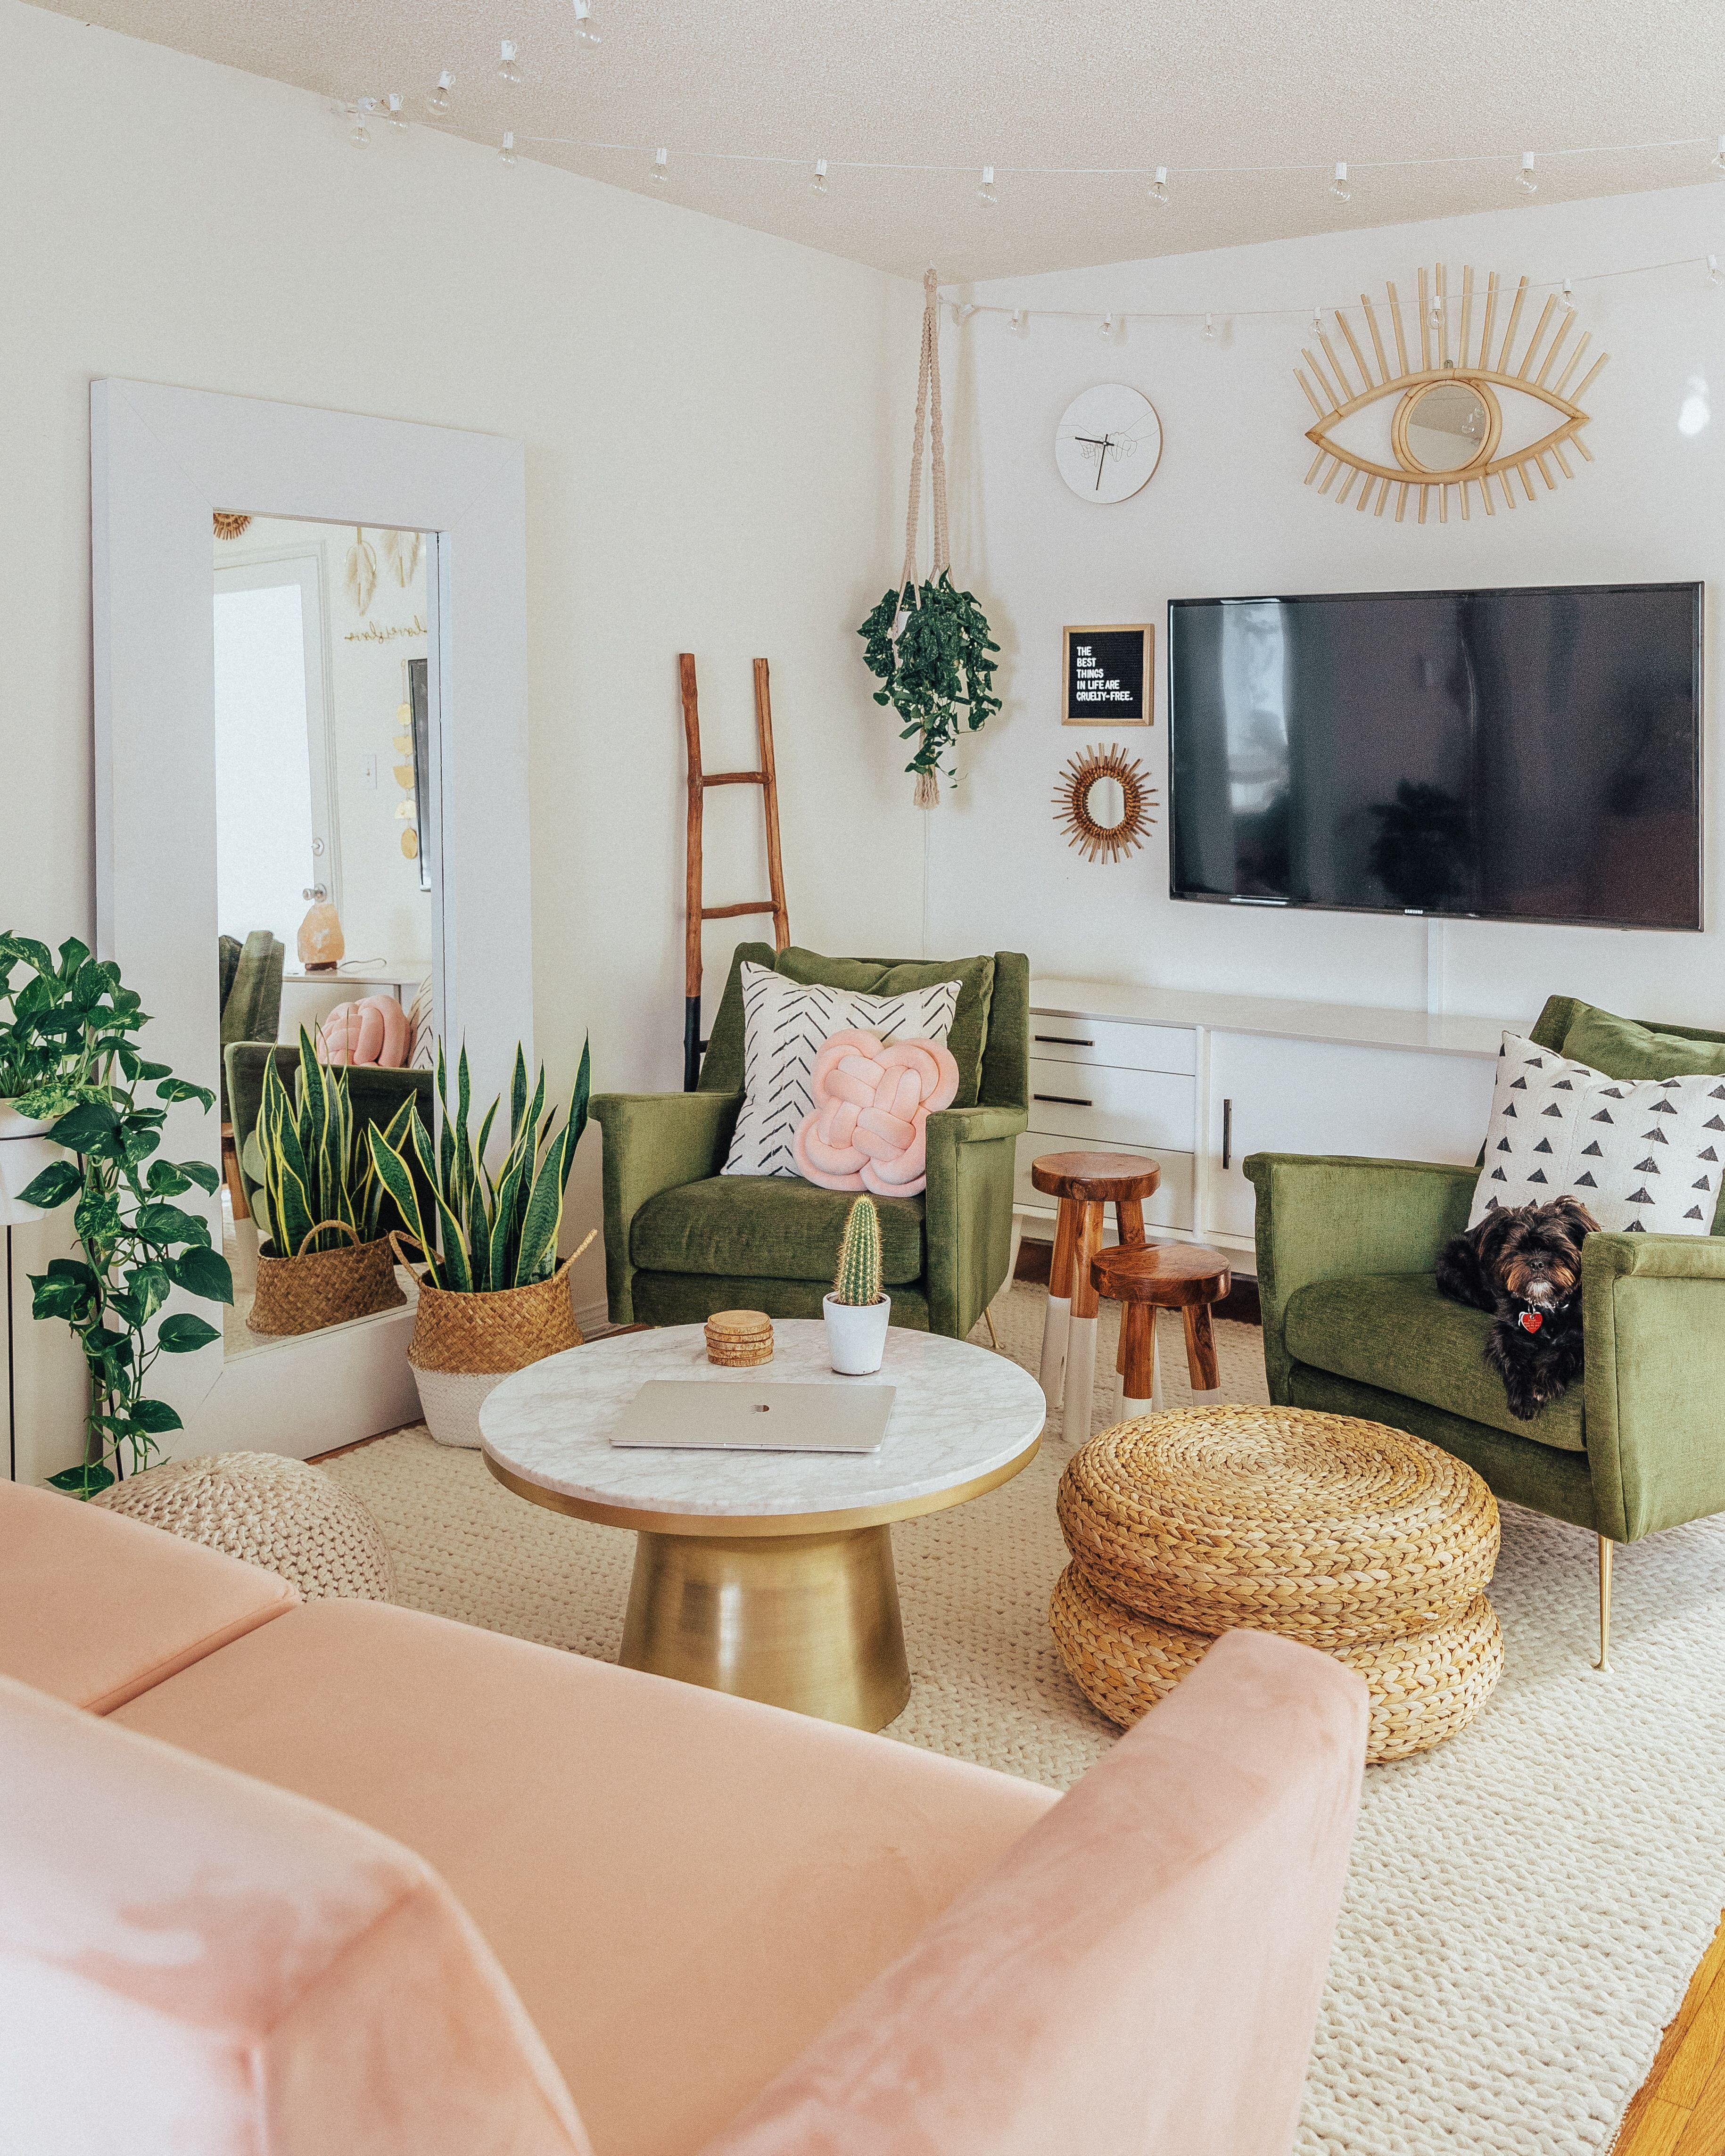 From A Pink Perfect Perspective The Next Home Decor Ideas Wil